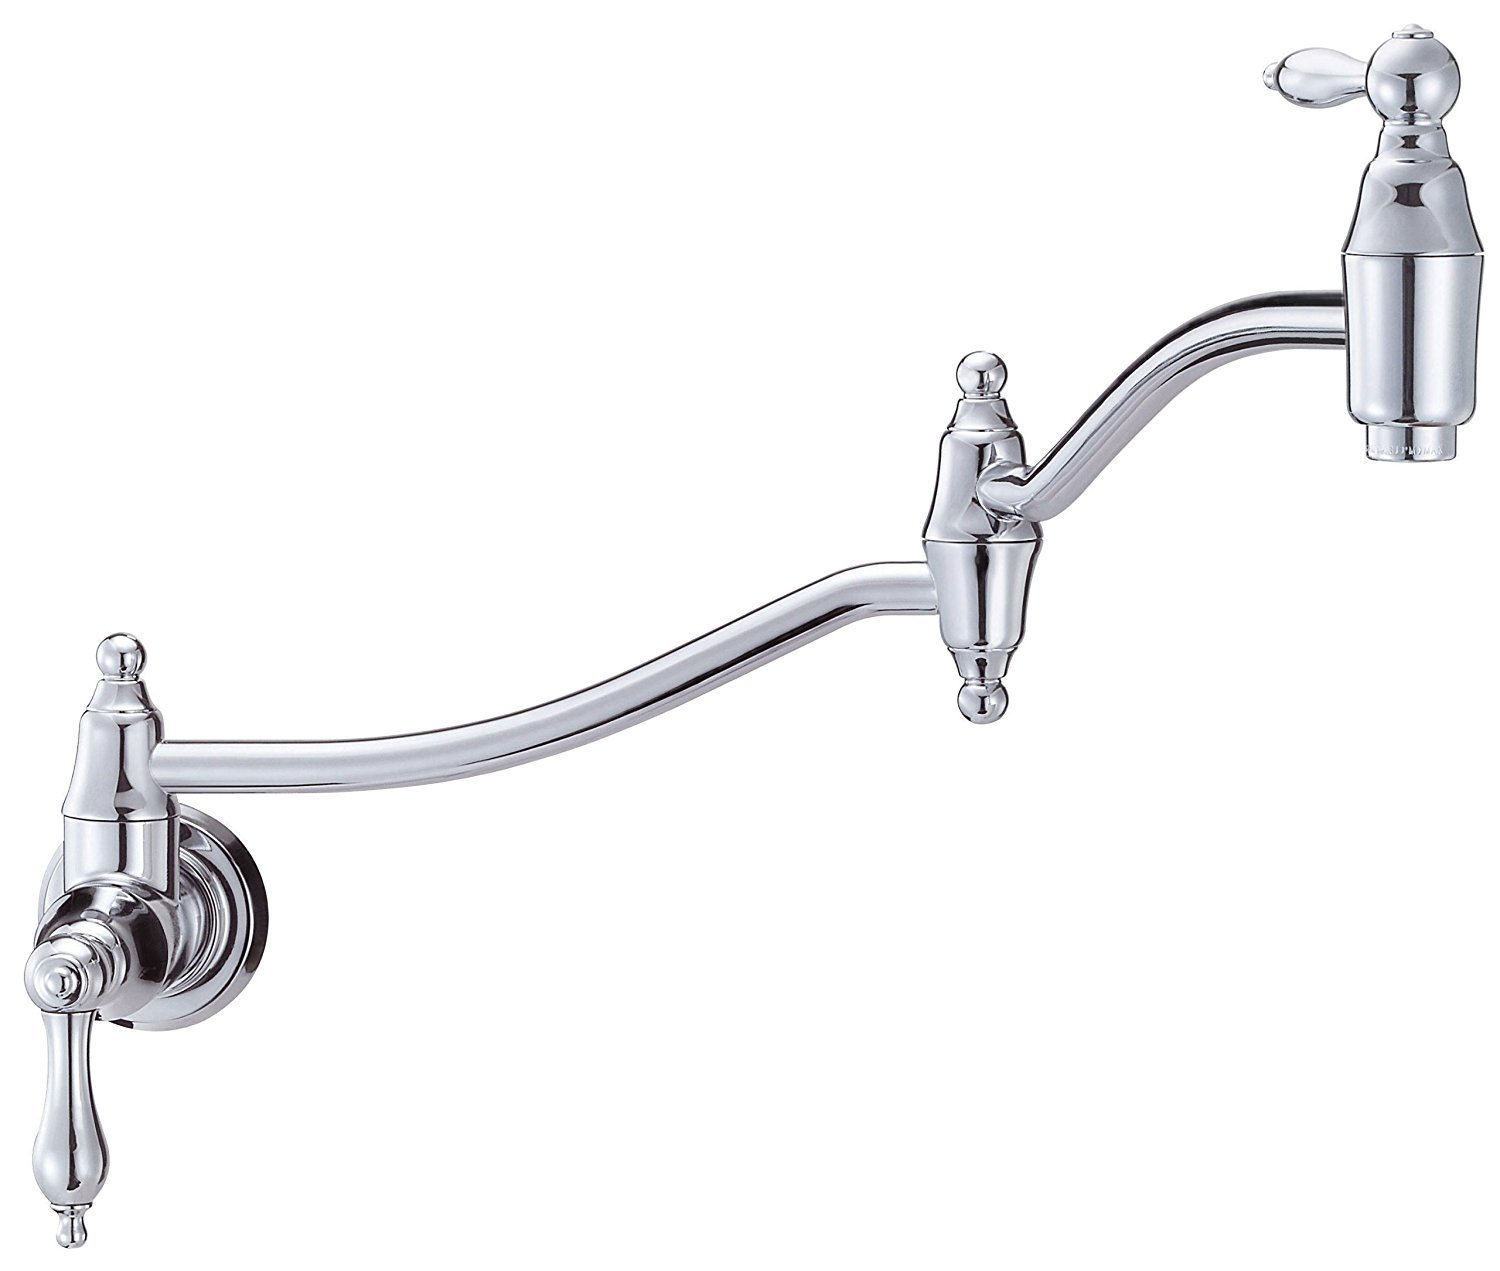 Danze D205040 Fairmont Wall Mount Pot Filler, Chrome by Danze